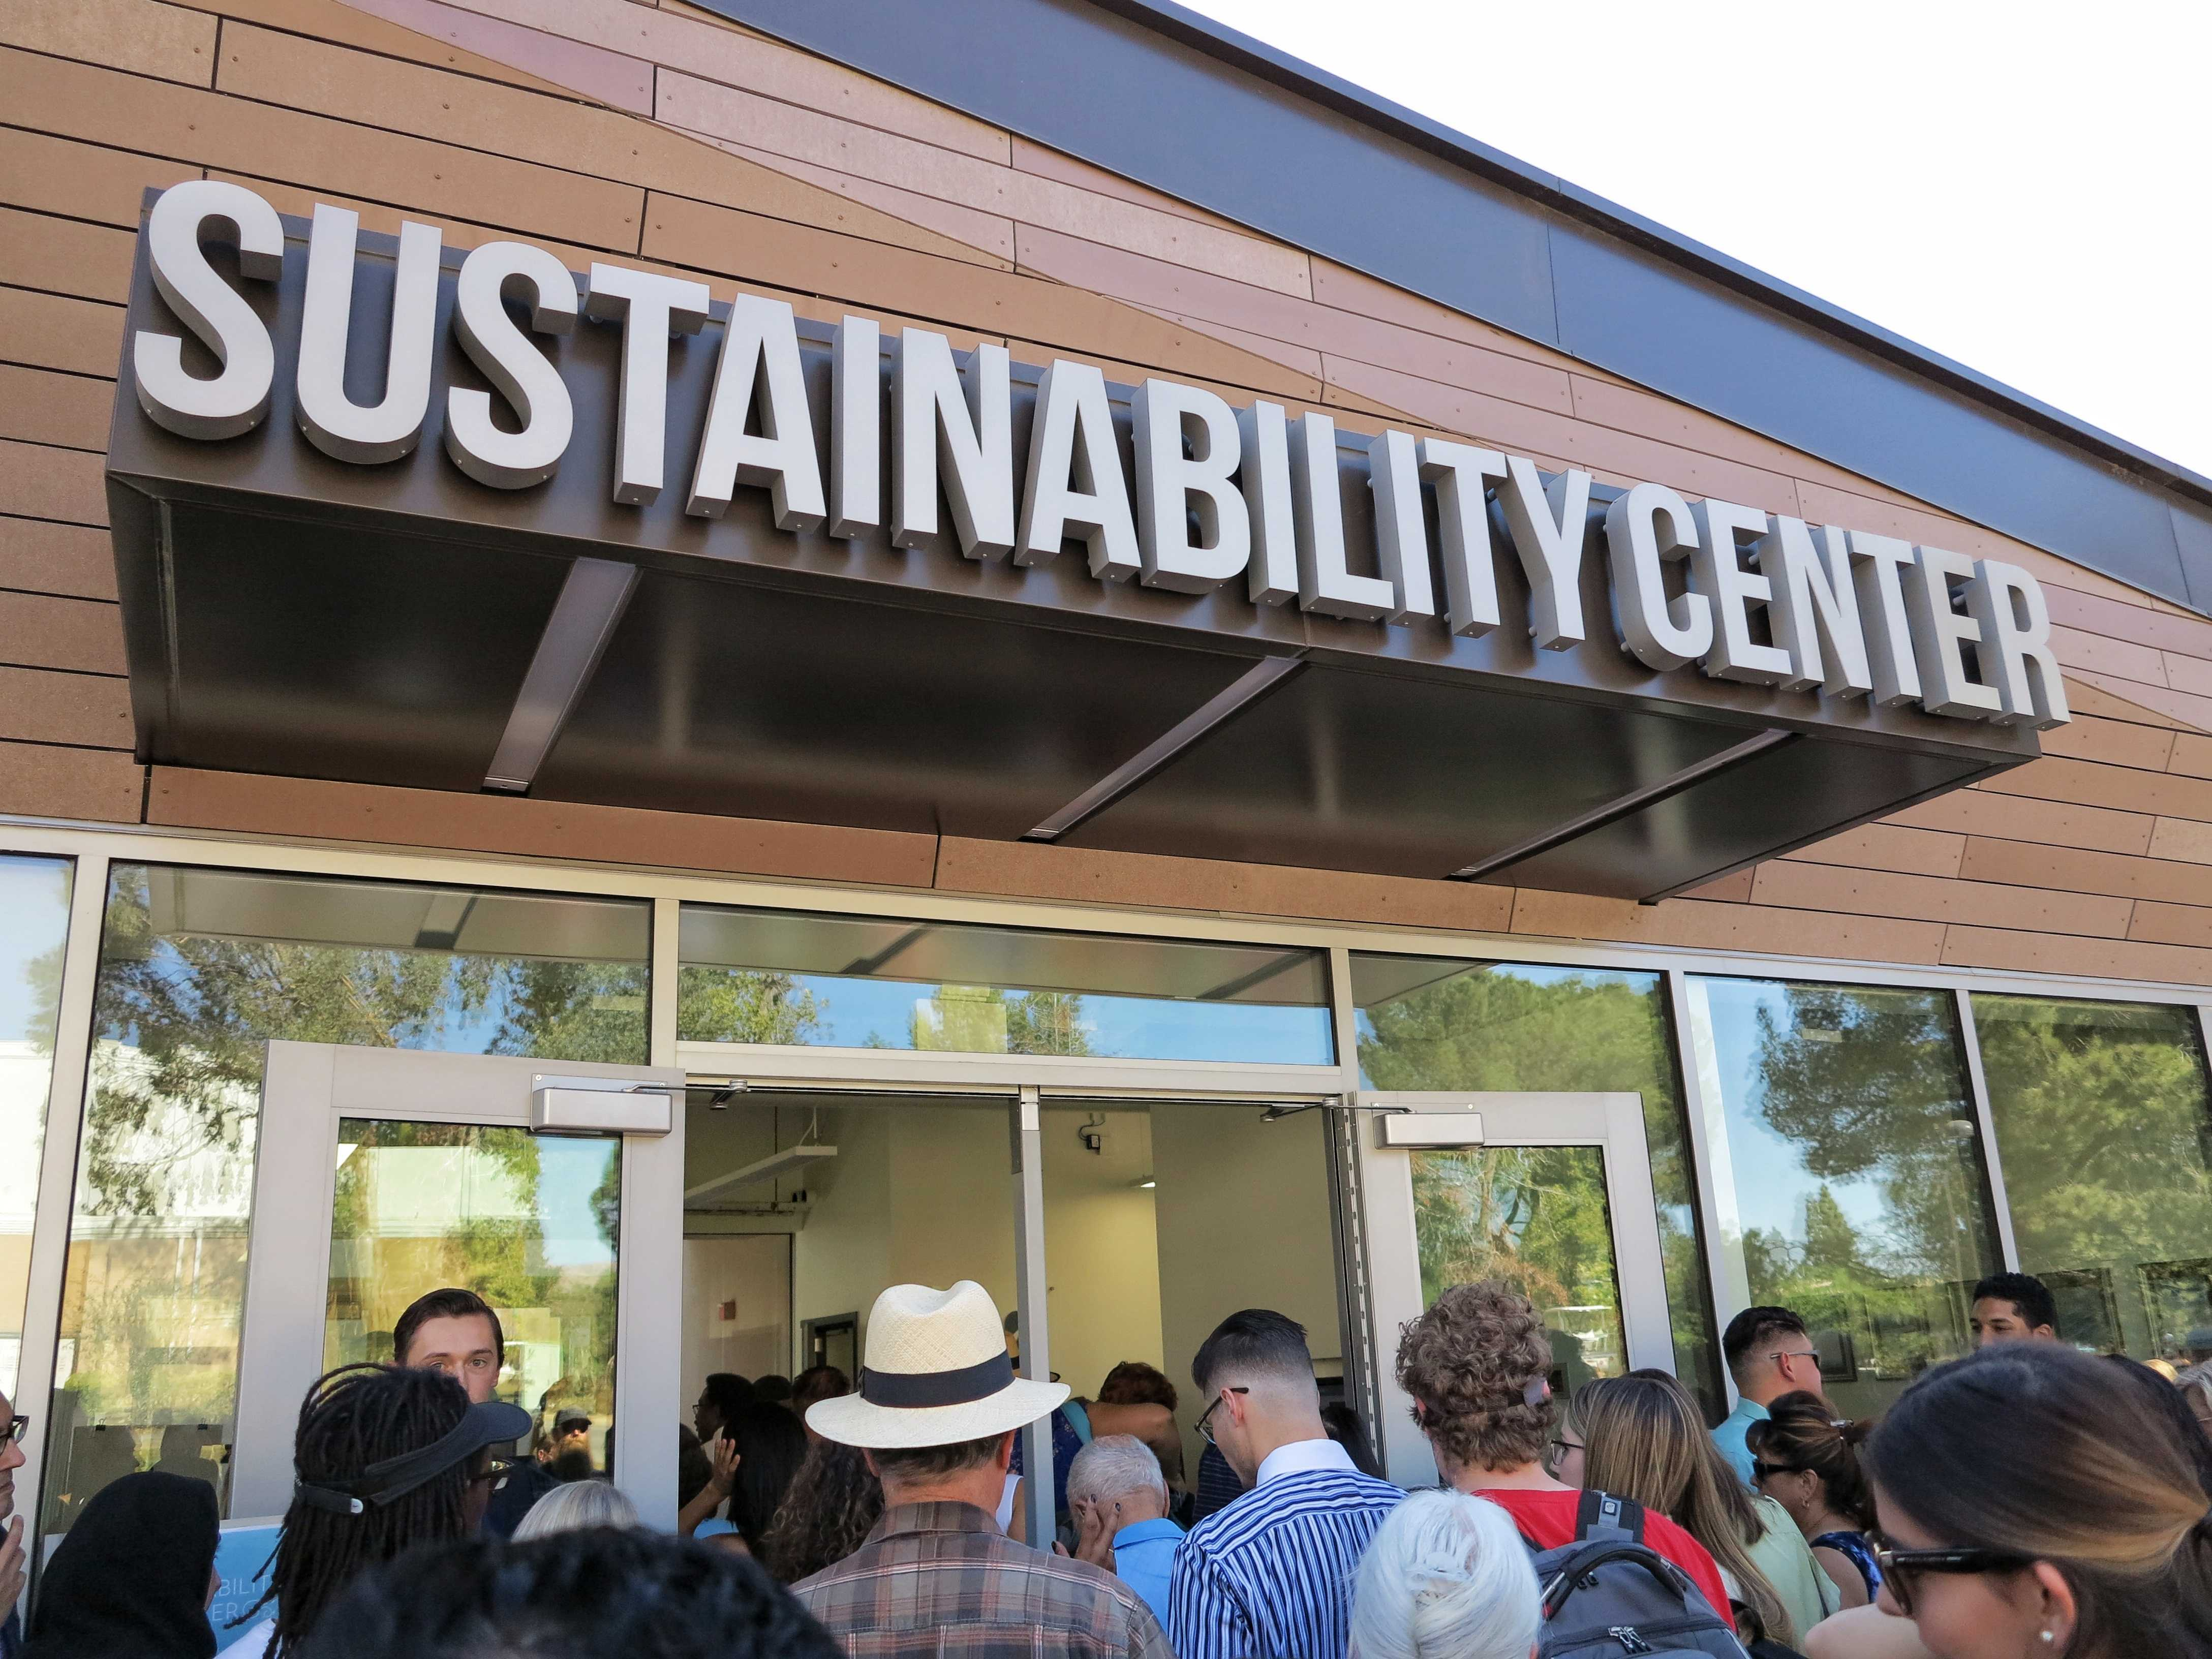 The crowd entering the brand new Sustainability Center at CSUN for the first time during their grand opening on October 26, 2017. Photo credit: Trevor Sena